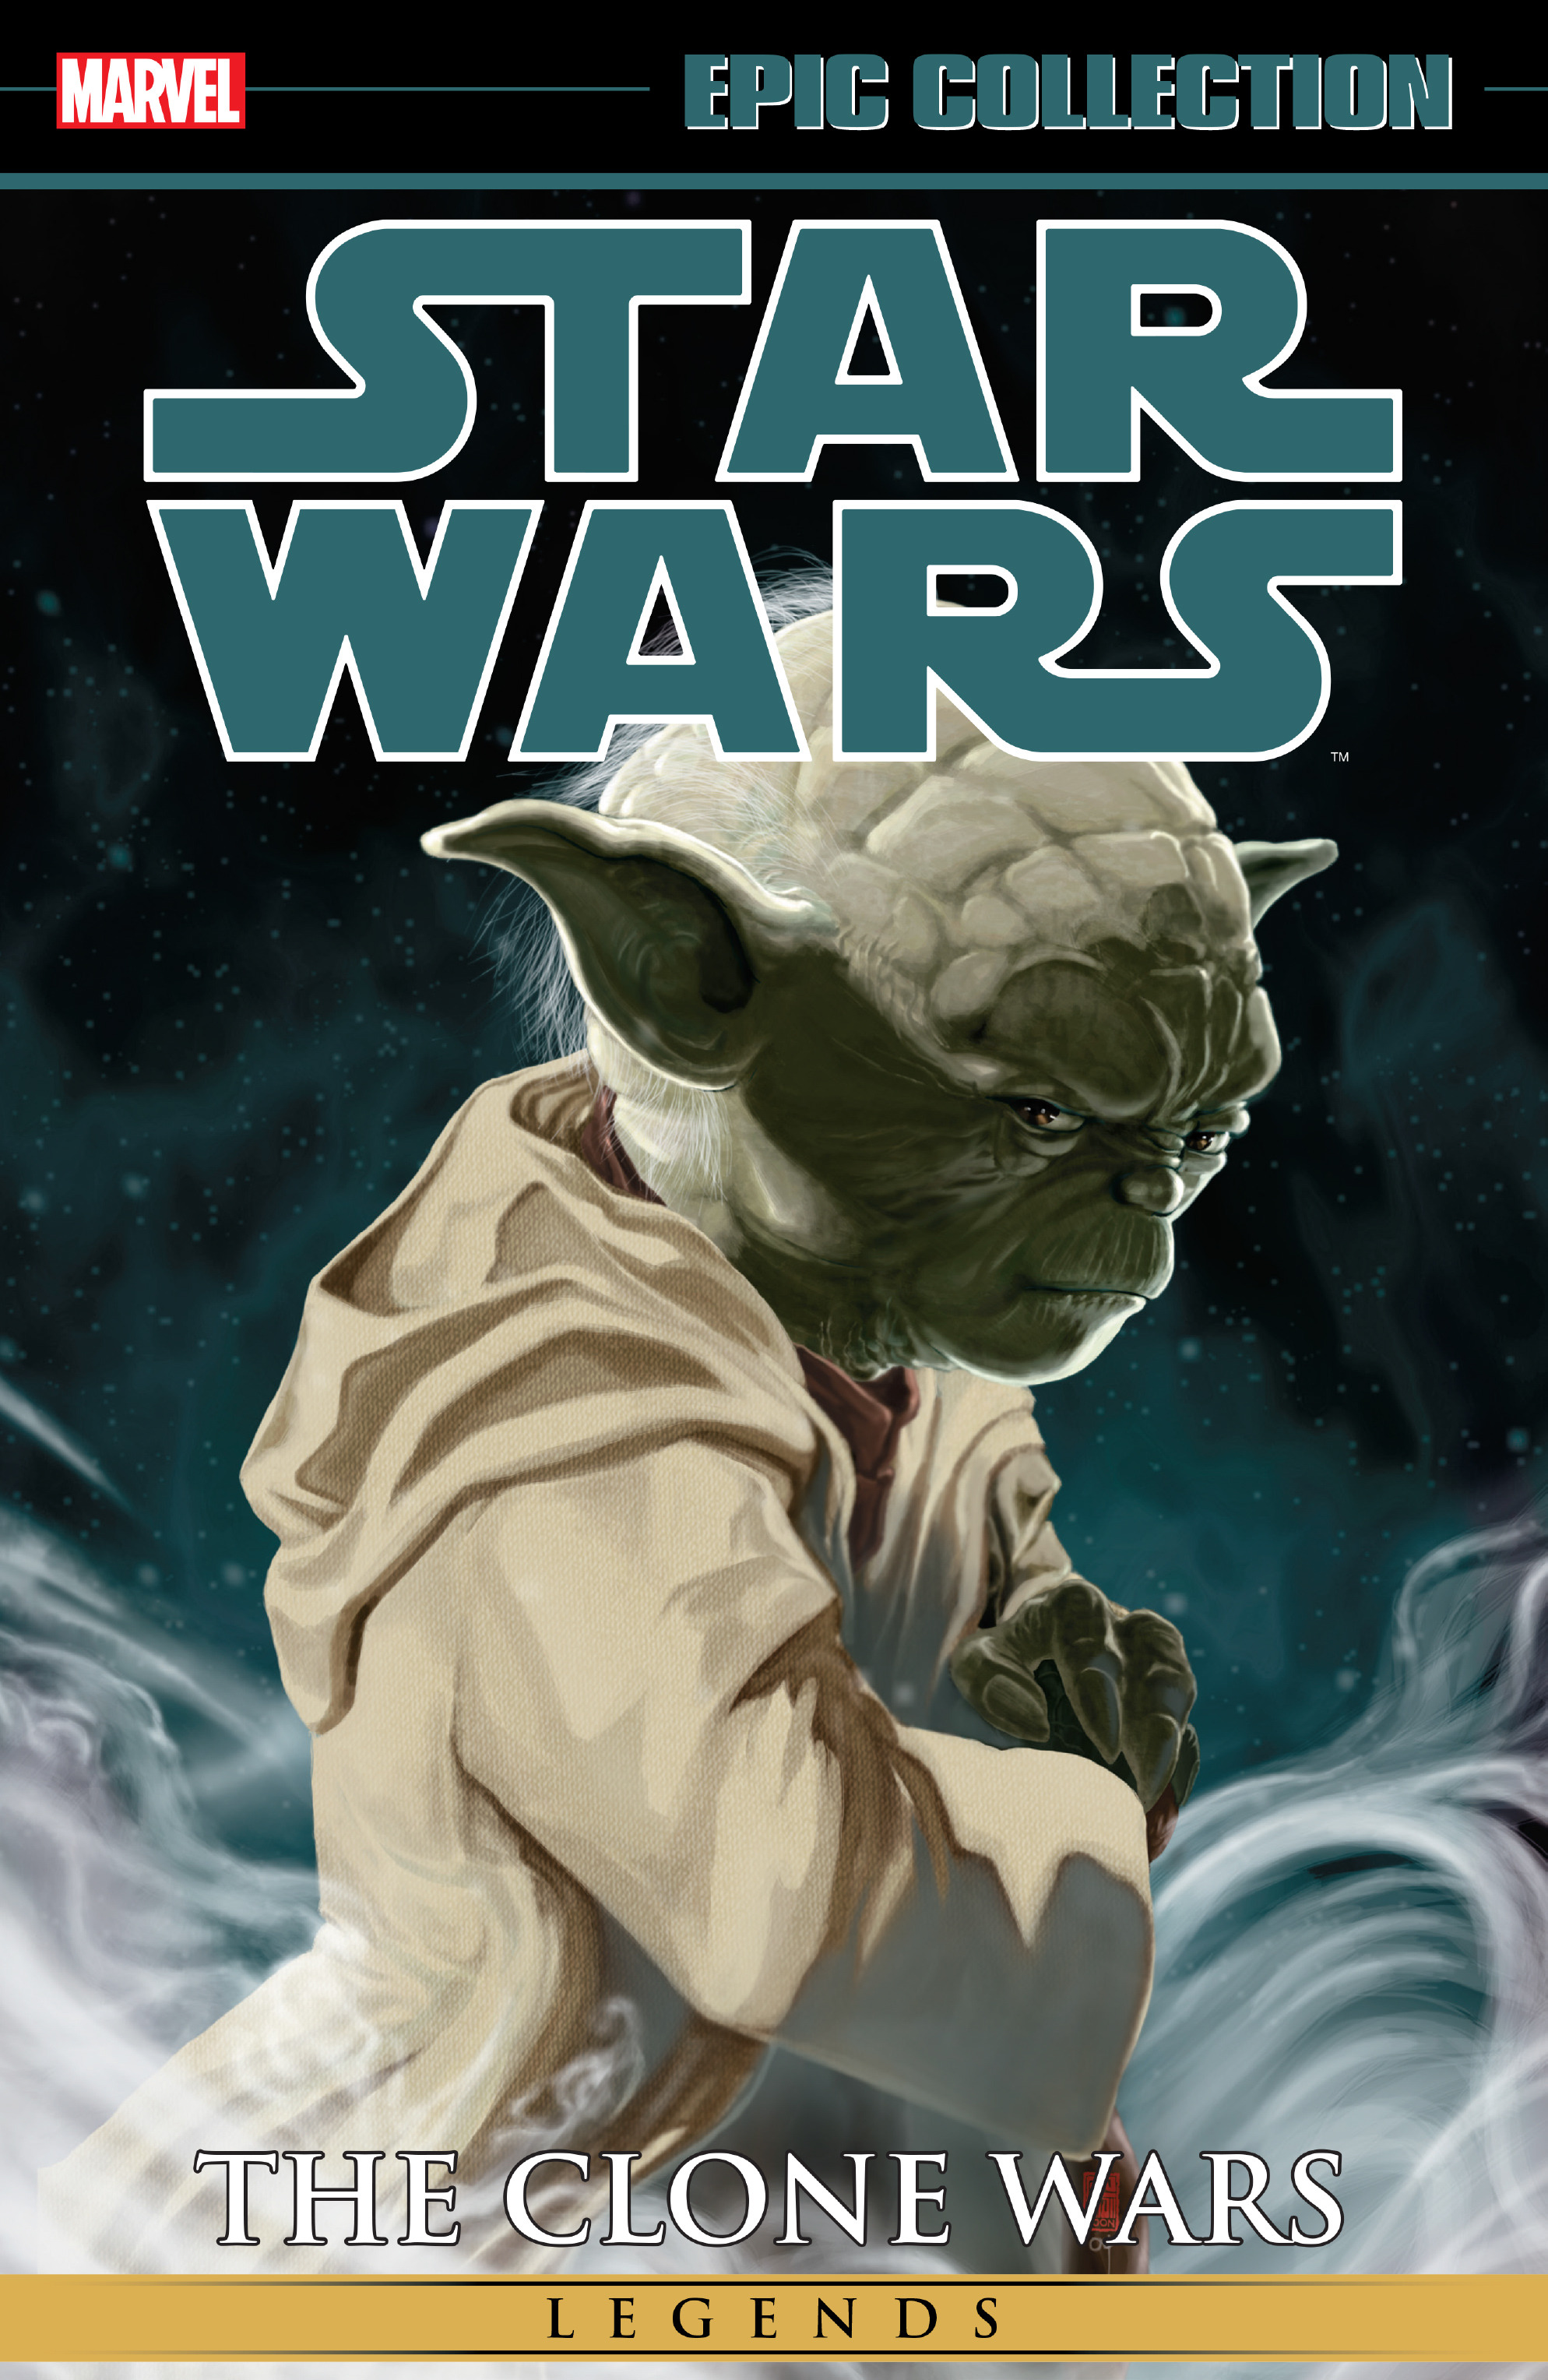 Star Wars Legends Epic Collection: The Clone Wars chap 1 pic 1